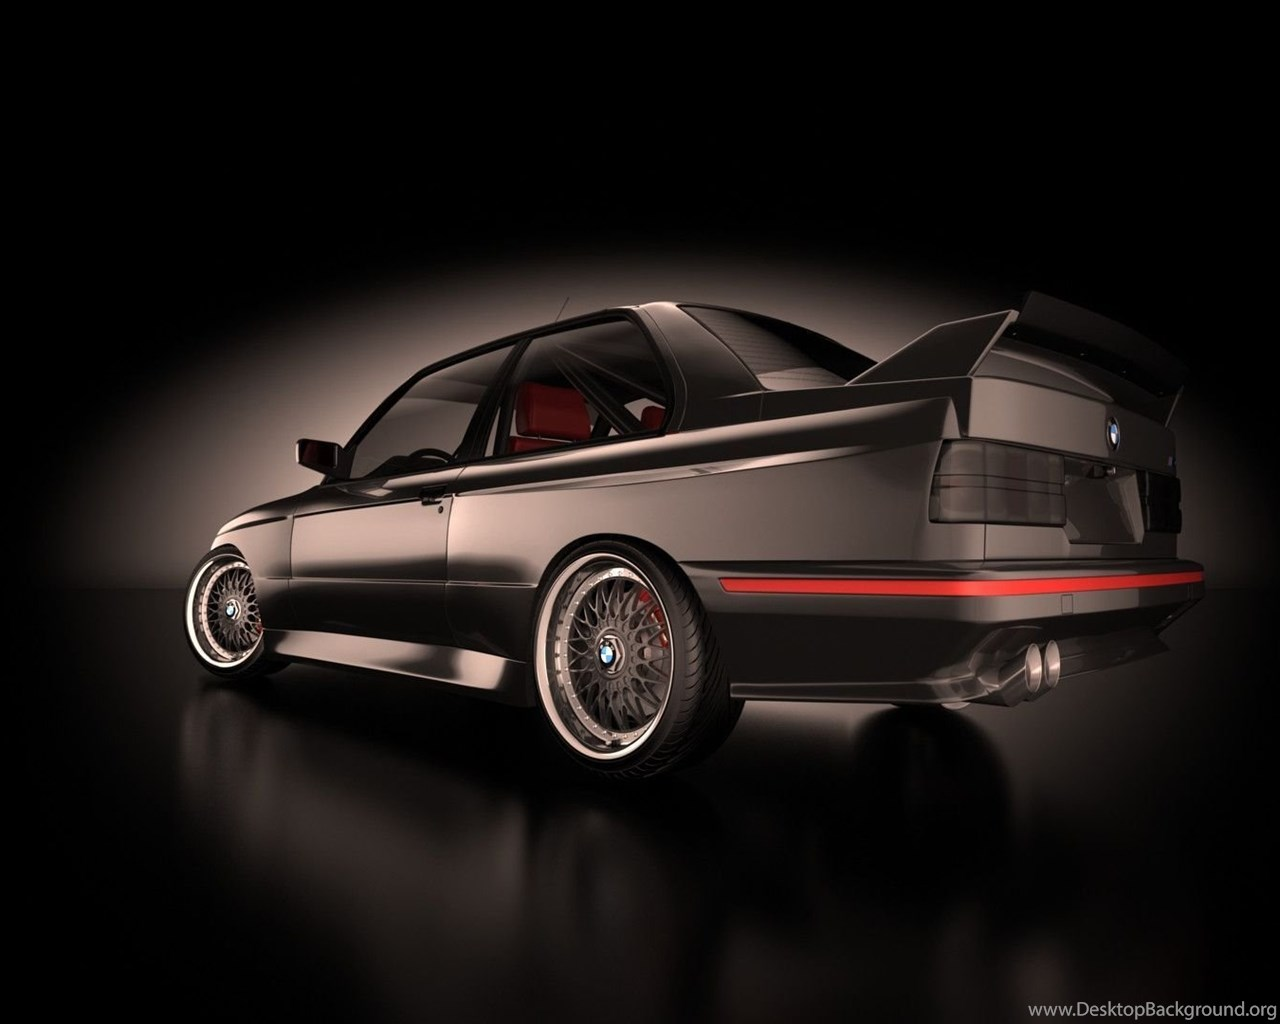 Bmw E30 M3 Wallpapers Wallpapers Cave Desktop Background